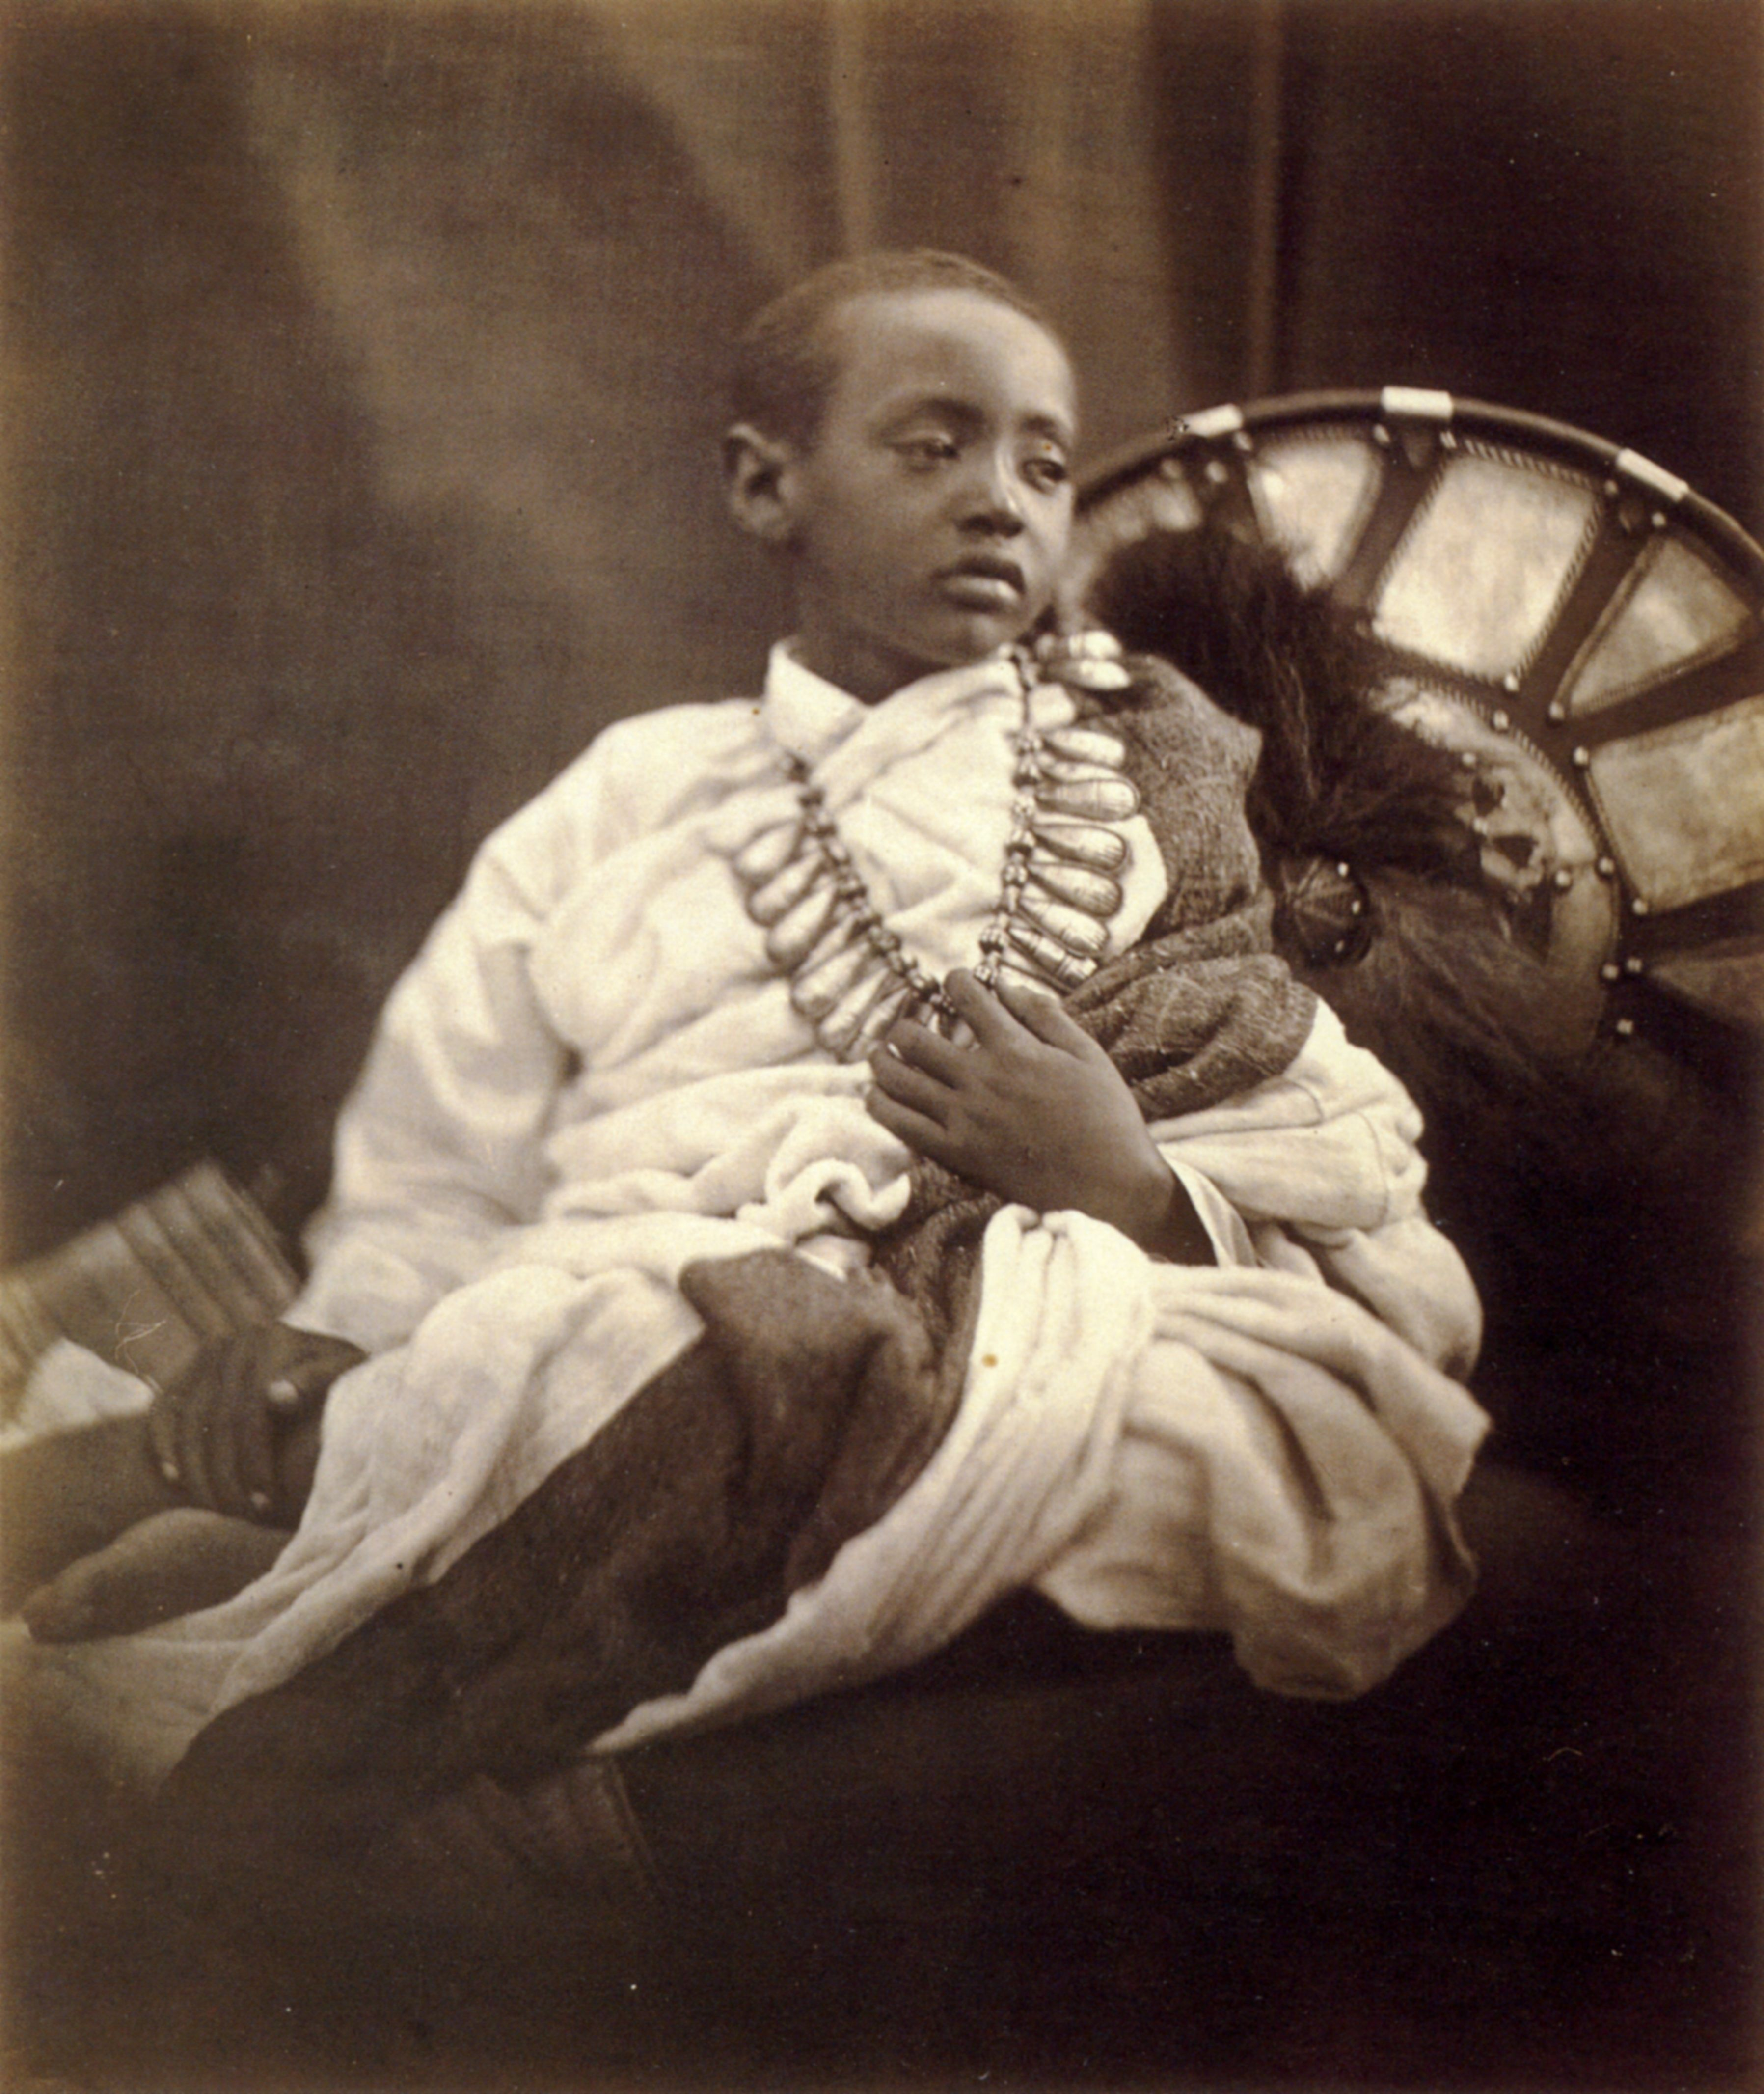 Portrait Of Prince Alamayu Son And Heir Of Emperor Tewodros Ii Of Ethiopia He Was Kidnapped And Taken Captive I African Royalty African History Black Royalty